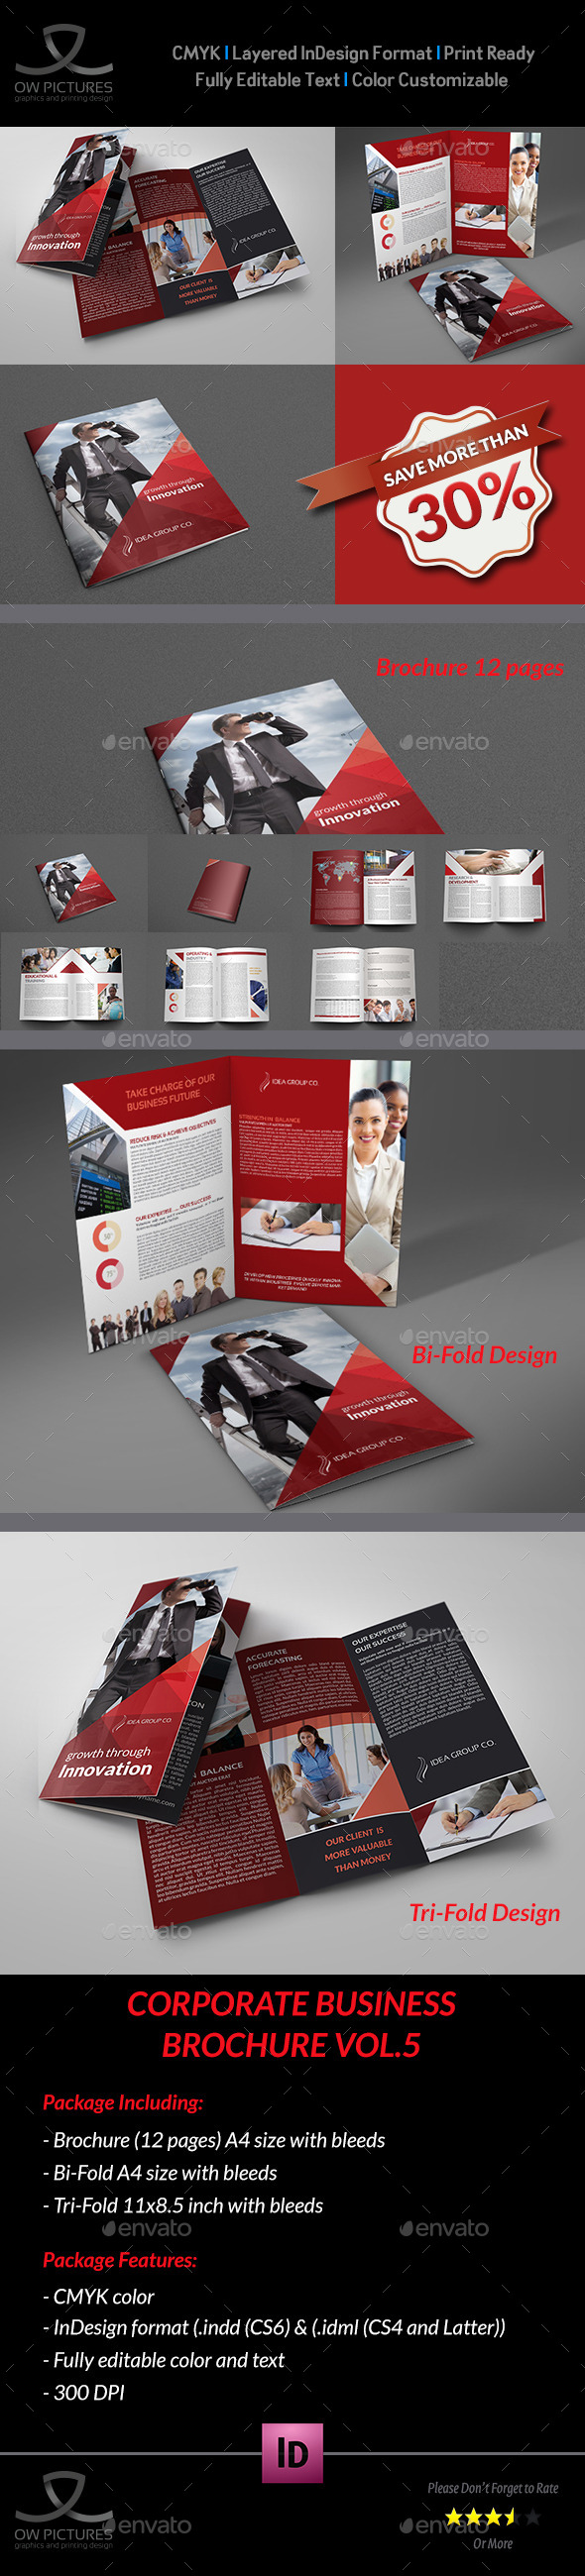 Company Brochure Bundle Vol.5 - Brochures Print Templates